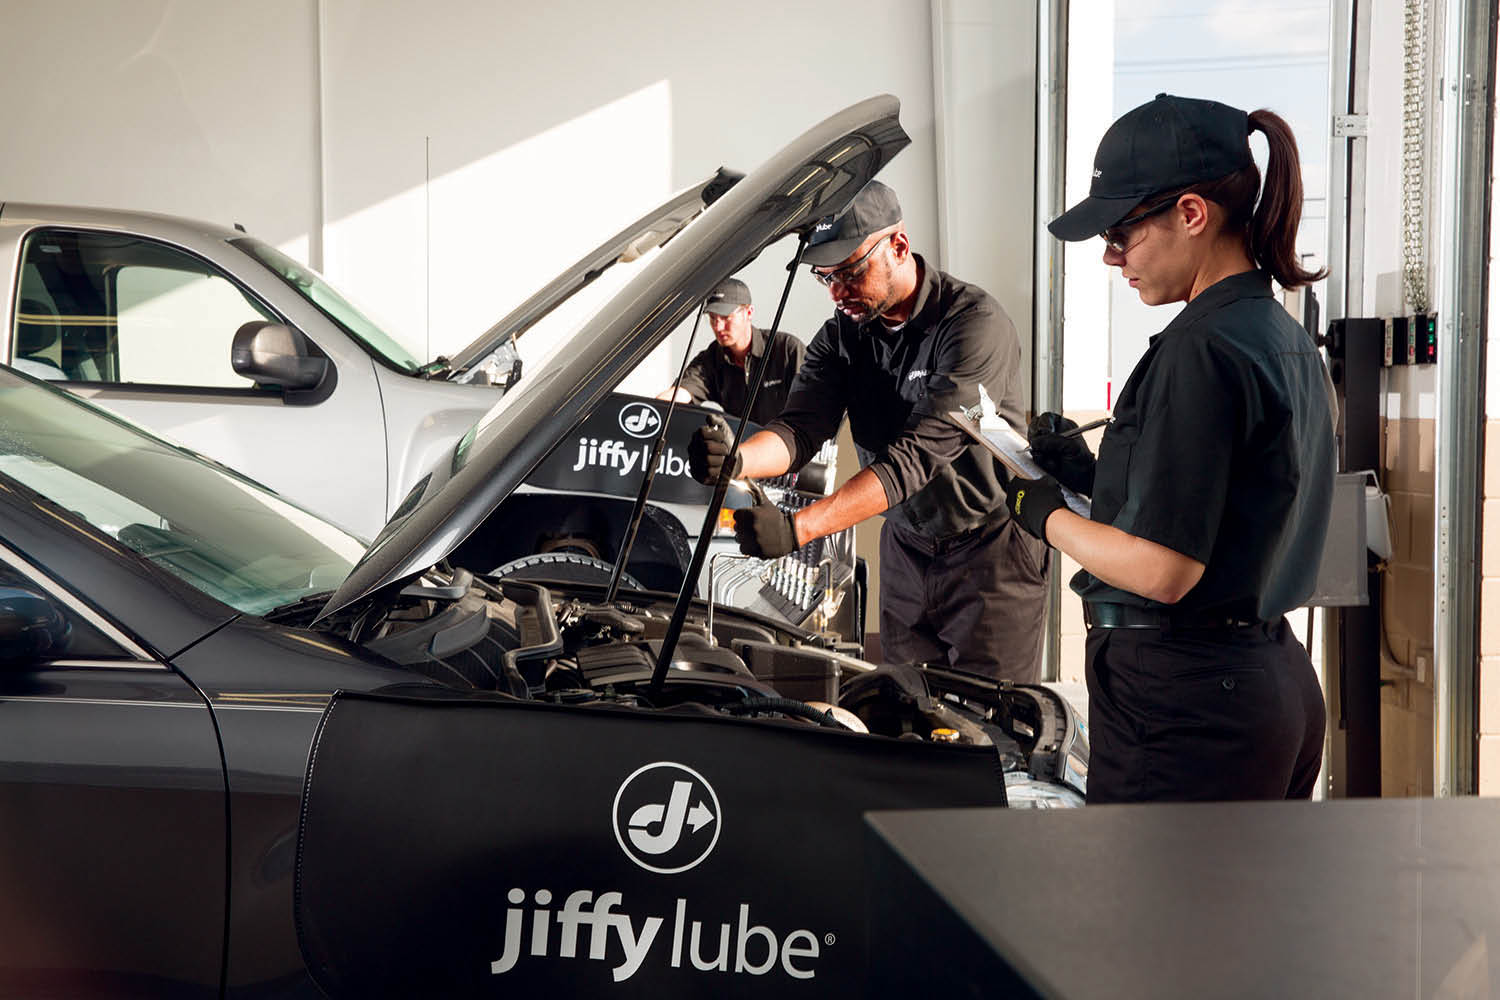 We understand that your vehicle is one of your most important assets. So whether you need manufacturer recommended maintenance or just a checkup to help keep your vehicle in top shape, you're in capable hands with Jiffy Lube® Technicians who are experts in preventive maintenance.